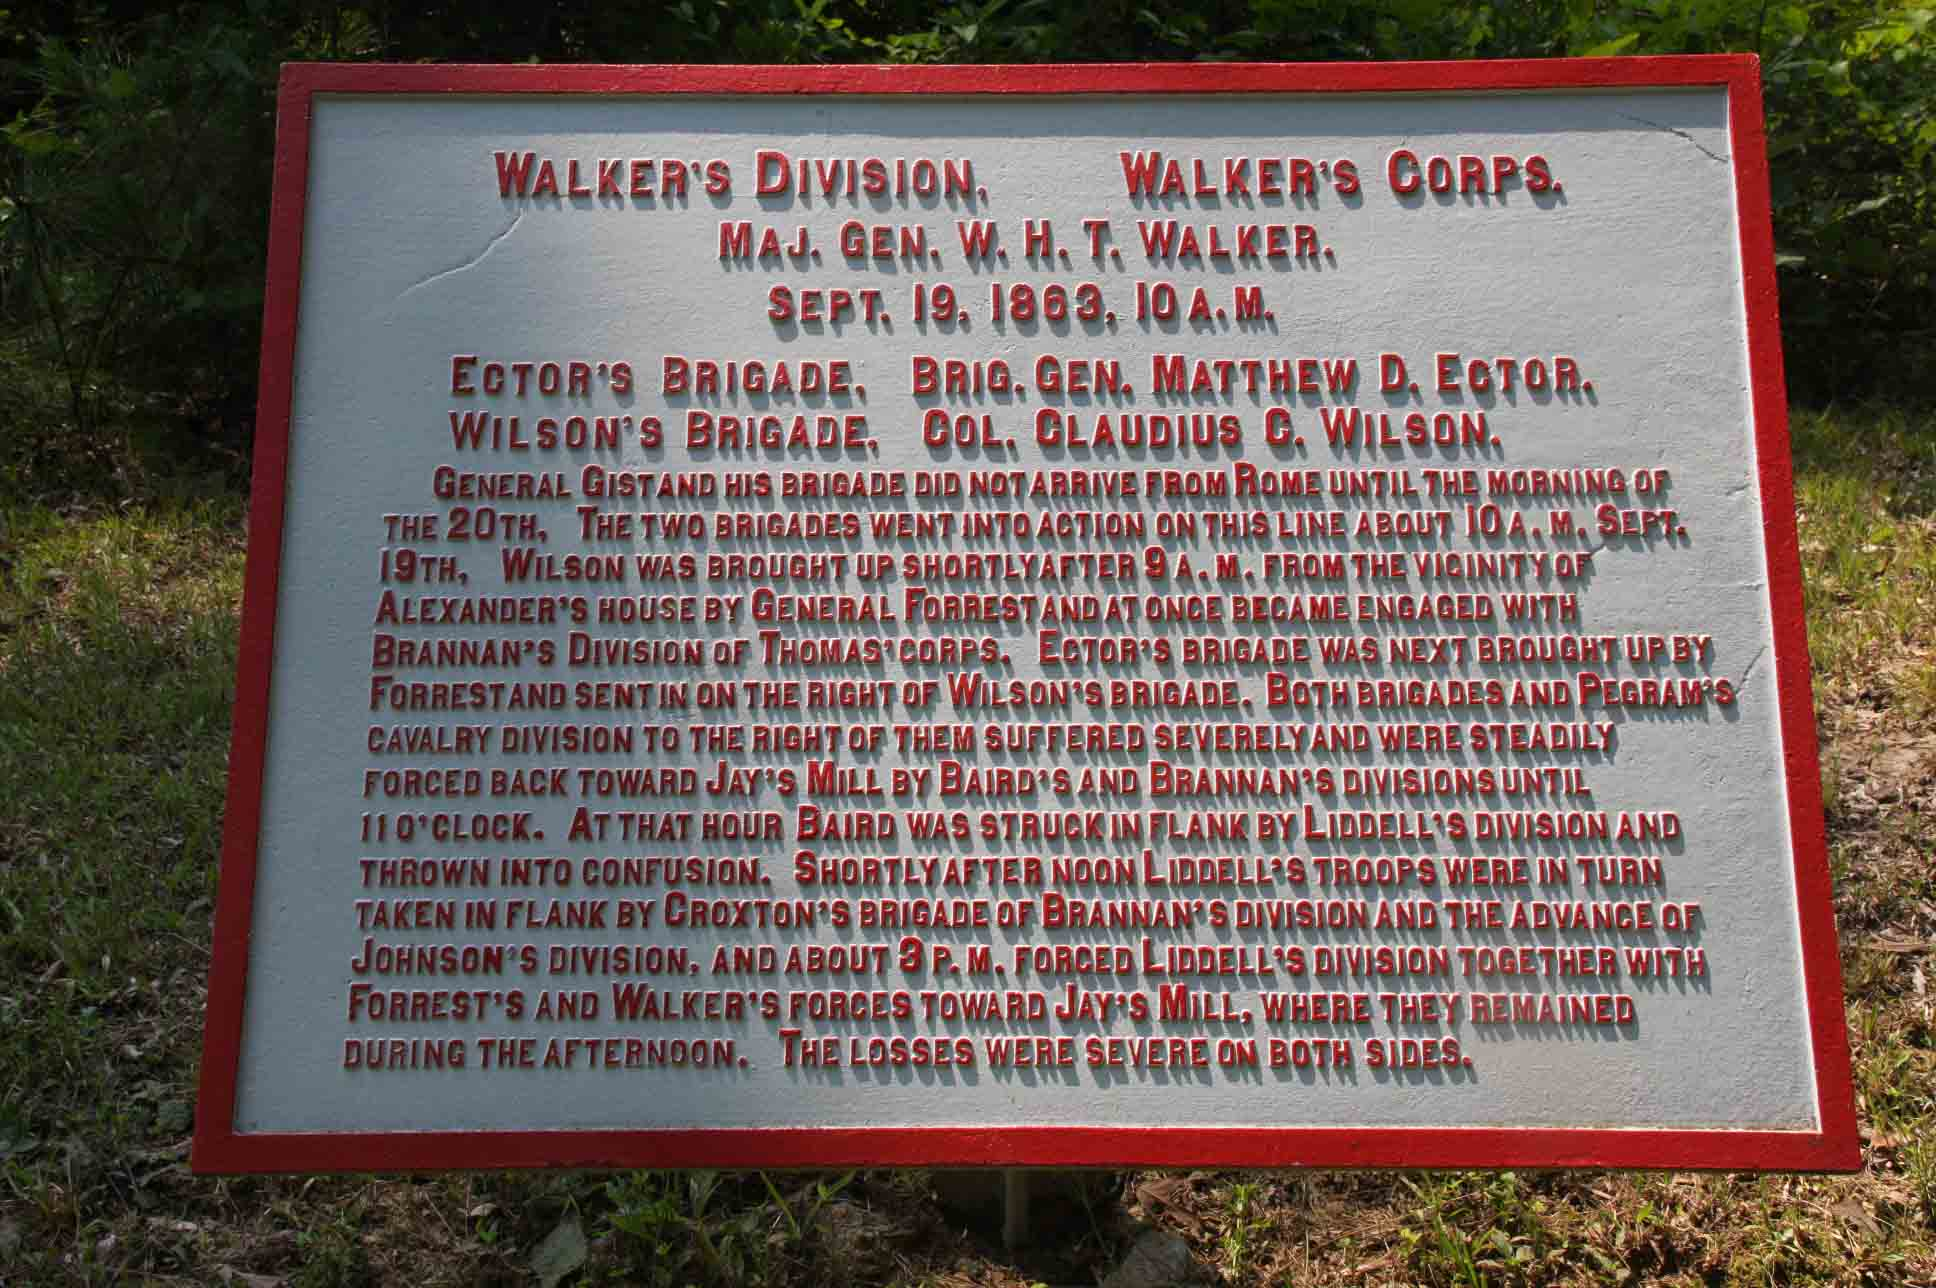 Walker's Division Tablet, click photo to enlarge.